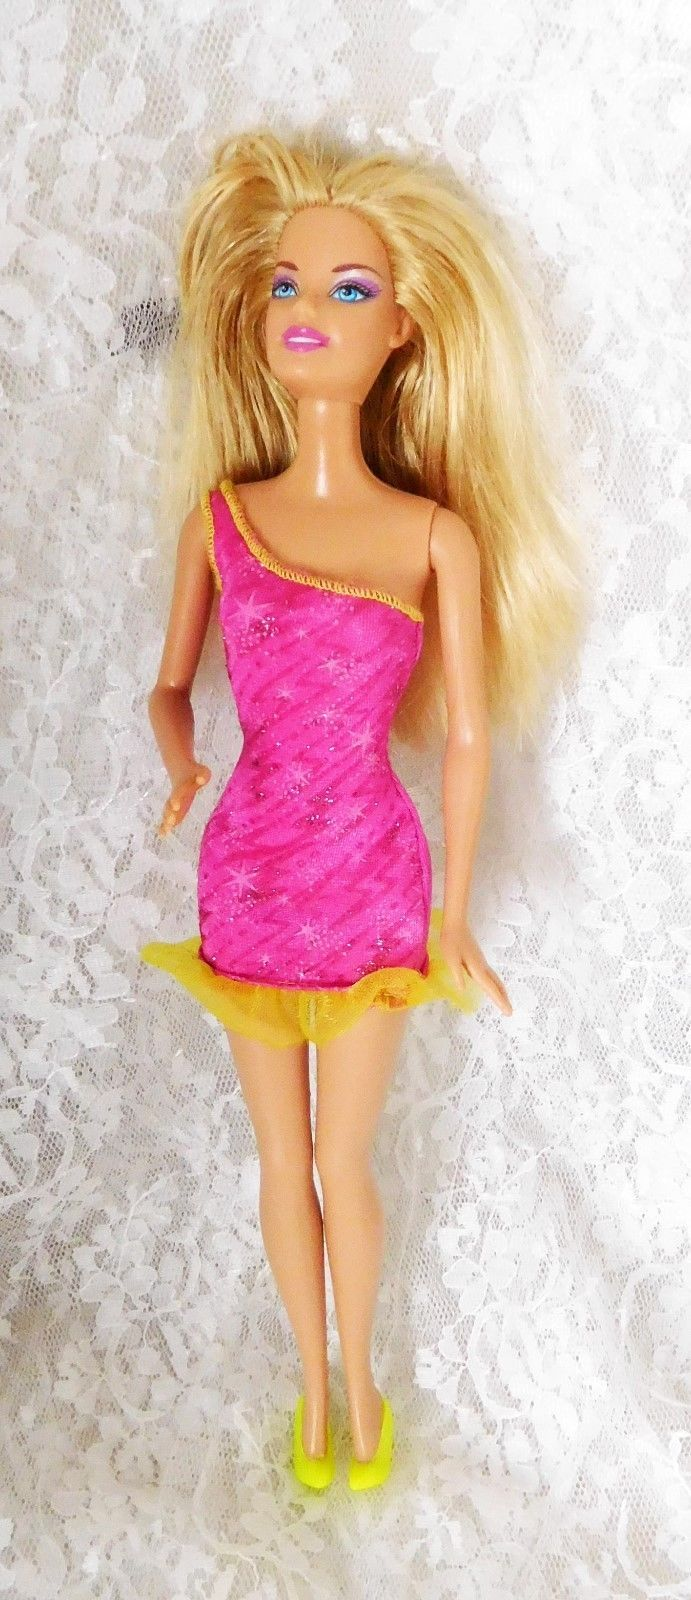 "Primary image for 1999 Mattel Barbie 11 1/2"" Doll #3252HF1 Bendable Knees - Blond Layered Hair"